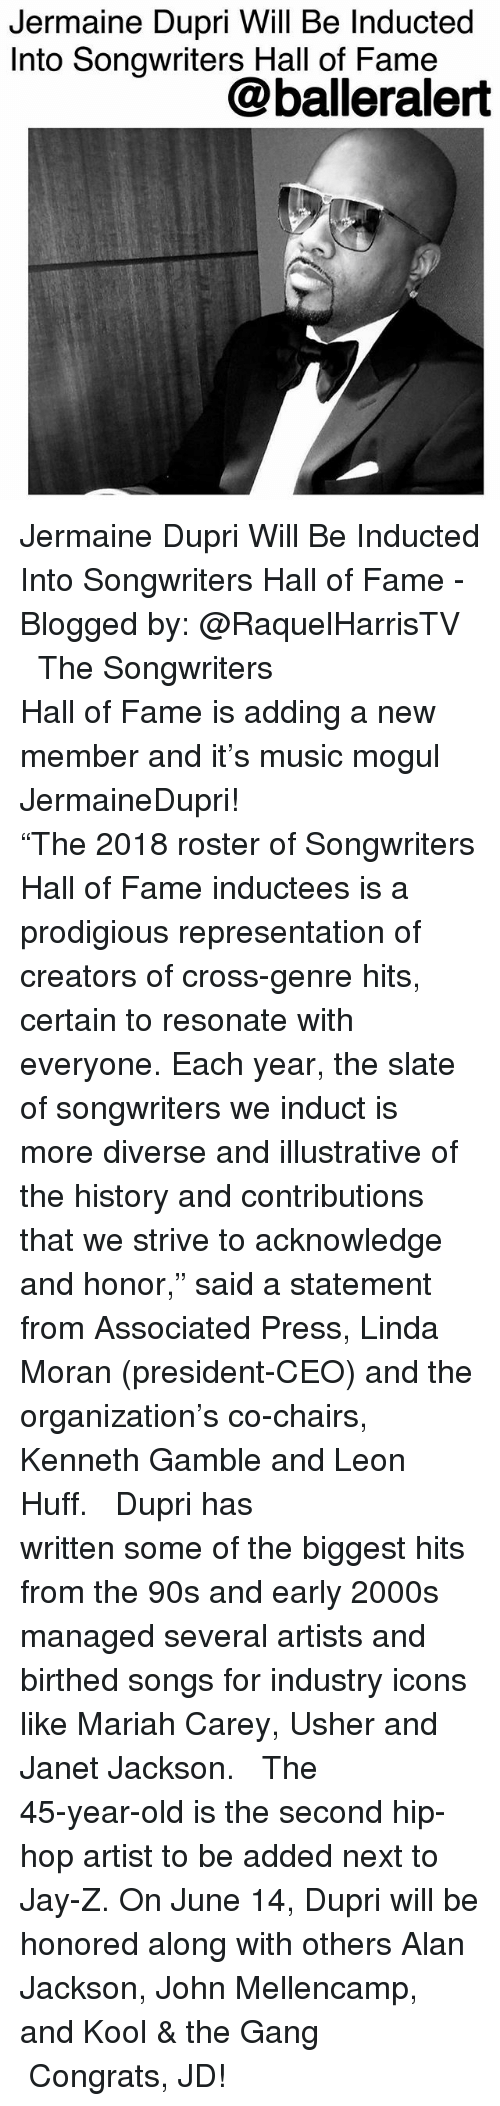 """Janet Jackson: Jermaine Dupri Will Be Inducted  Into Songwriters Hall of Fame  @balleralert Jermaine Dupri Will Be Inducted Into Songwriters Hall of Fame - Blogged by: @RaquelHarrisTV ⠀⠀⠀⠀⠀⠀⠀⠀⠀ ⠀⠀⠀⠀⠀⠀⠀⠀⠀ The Songwriters Hall of Fame is adding a new member and it's music mogul JermaineDupri! ⠀⠀⠀⠀⠀⠀⠀⠀⠀ ⠀⠀⠀⠀⠀⠀⠀⠀⠀ """"The 2018 roster of Songwriters Hall of Fame inductees is a prodigious representation of creators of cross-genre hits, certain to resonate with everyone. Each year, the slate of songwriters we induct is more diverse and illustrative of the history and contributions that we strive to acknowledge and honor,"""" said a statement from Associated Press, Linda Moran (president-CEO) and the organization's co-chairs, Kenneth Gamble and Leon Huff. ⠀⠀⠀⠀⠀⠀⠀⠀⠀ ⠀⠀⠀⠀⠀⠀⠀⠀⠀ Dupri has written some of the biggest hits from the 90s and early 2000s managed several artists and birthed songs for industry icons like Mariah Carey, Usher and Janet Jackson. ⠀⠀⠀⠀⠀⠀⠀⠀⠀ ⠀⠀⠀⠀⠀⠀⠀⠀⠀ The 45-year-old is the second hip-hop artist to be added next to Jay-Z. On June 14, Dupri will be honored along with others Alan Jackson, John Mellencamp, and Kool & the Gang ⠀⠀⠀⠀⠀⠀⠀⠀⠀ ⠀⠀⠀⠀⠀⠀⠀⠀⠀ Congrats, JD!"""